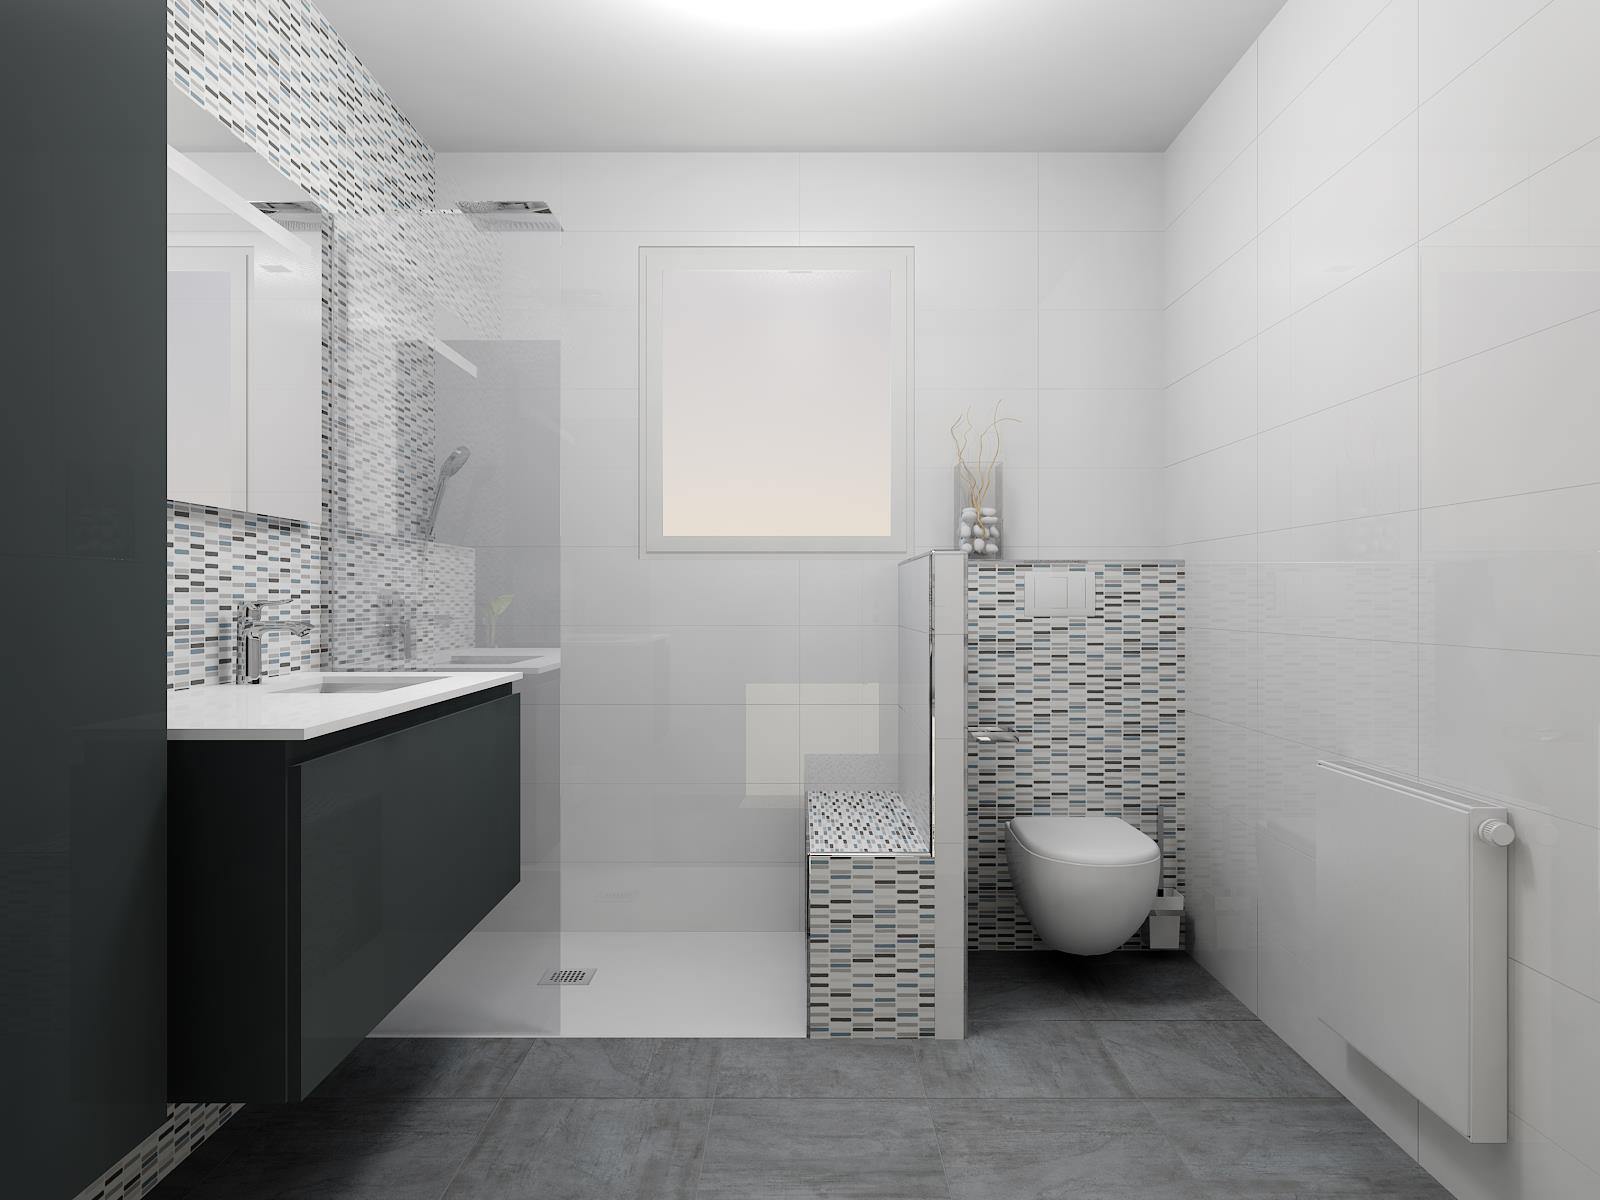 Mattout carrelage dem13247 3 bathroom by mattout carrelage for Mattout carrelage aubagne